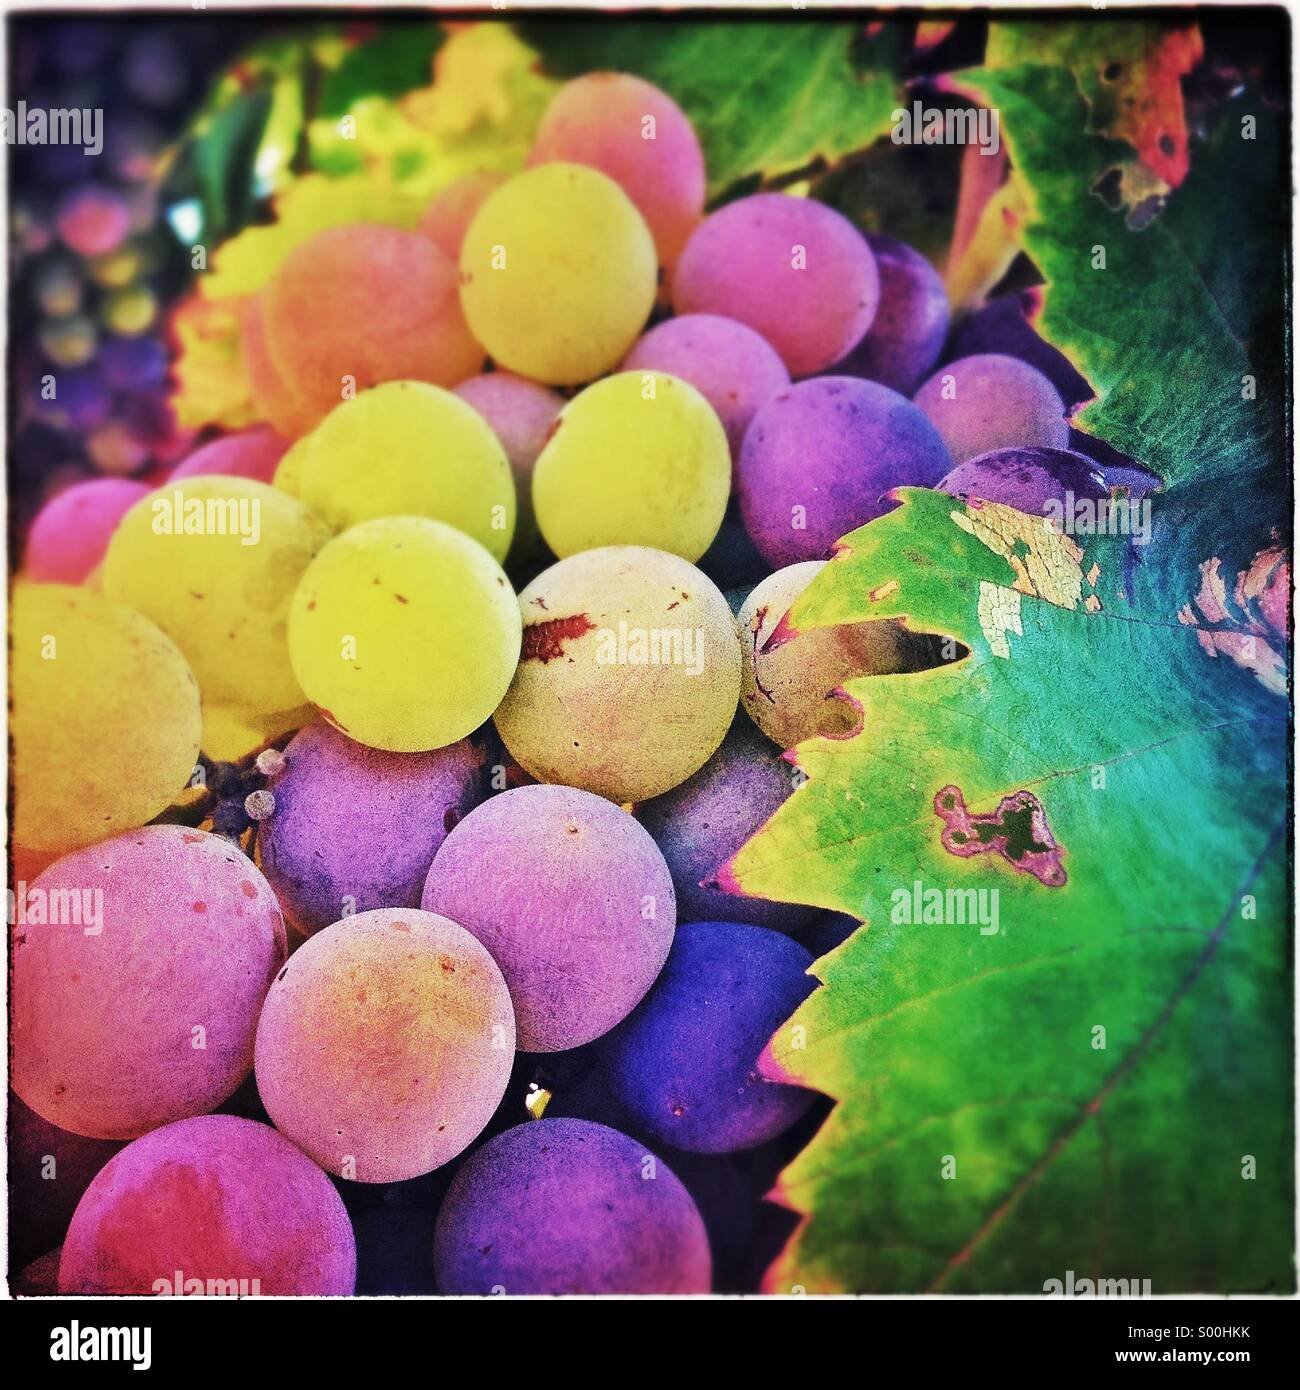 Bunch of colorful grapes - Stock Image